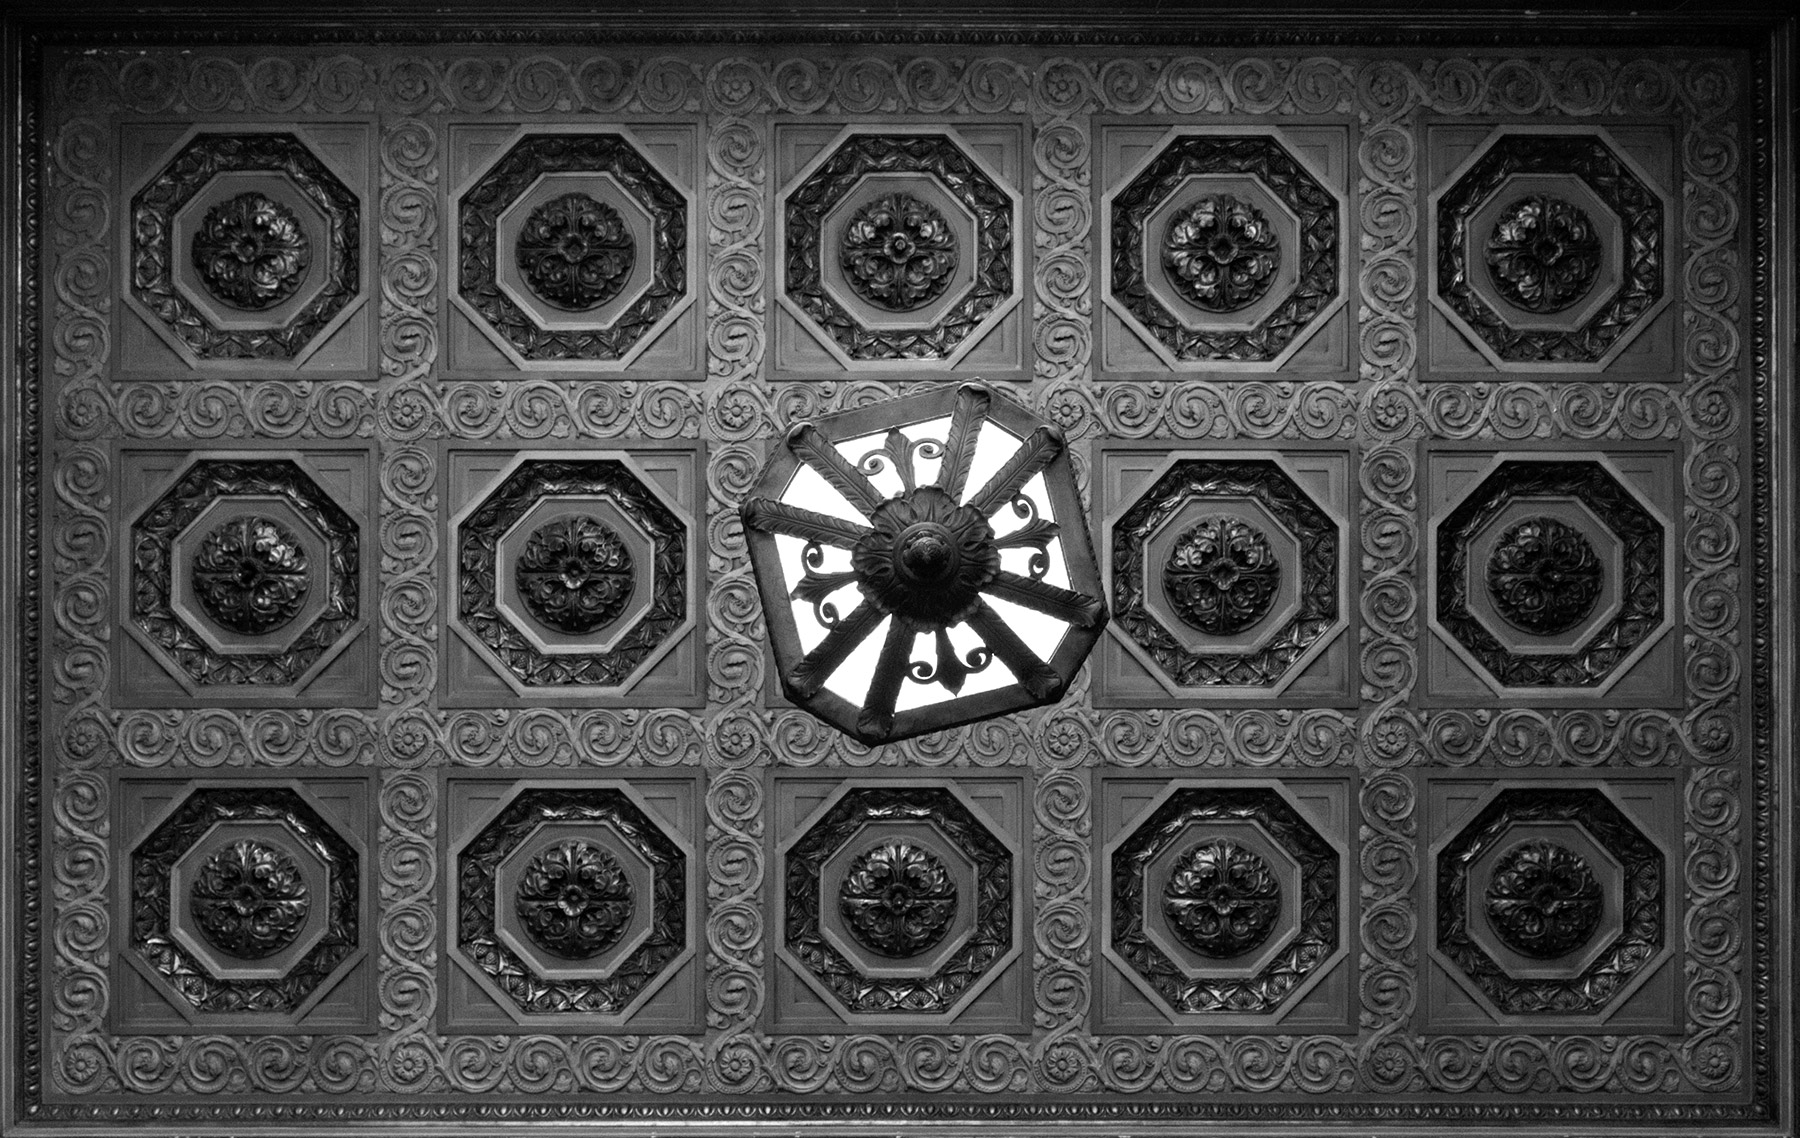 20160628. Commerce Court North Vestibule Ceiling.